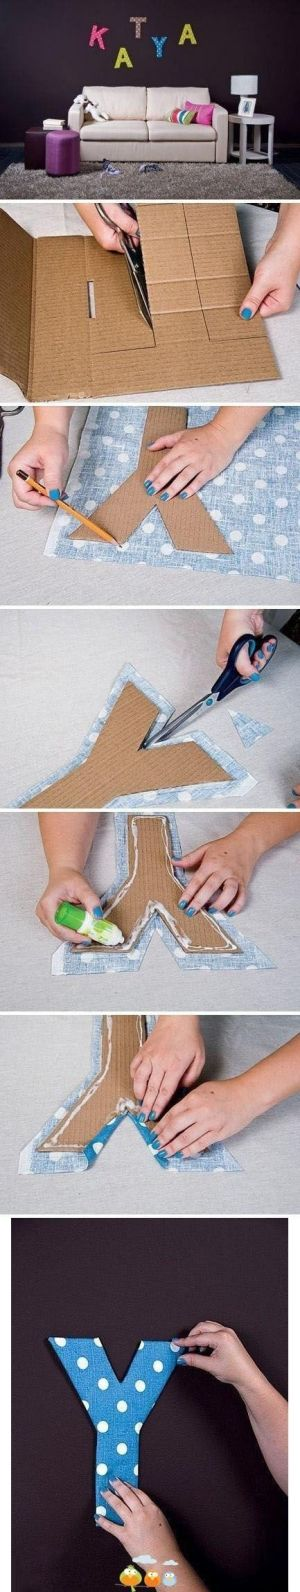 Cardboard Letters. Would to this with the words LOVE or FAMILY and in pretty fabric matching my couch and pillows! Maybe this weekend!